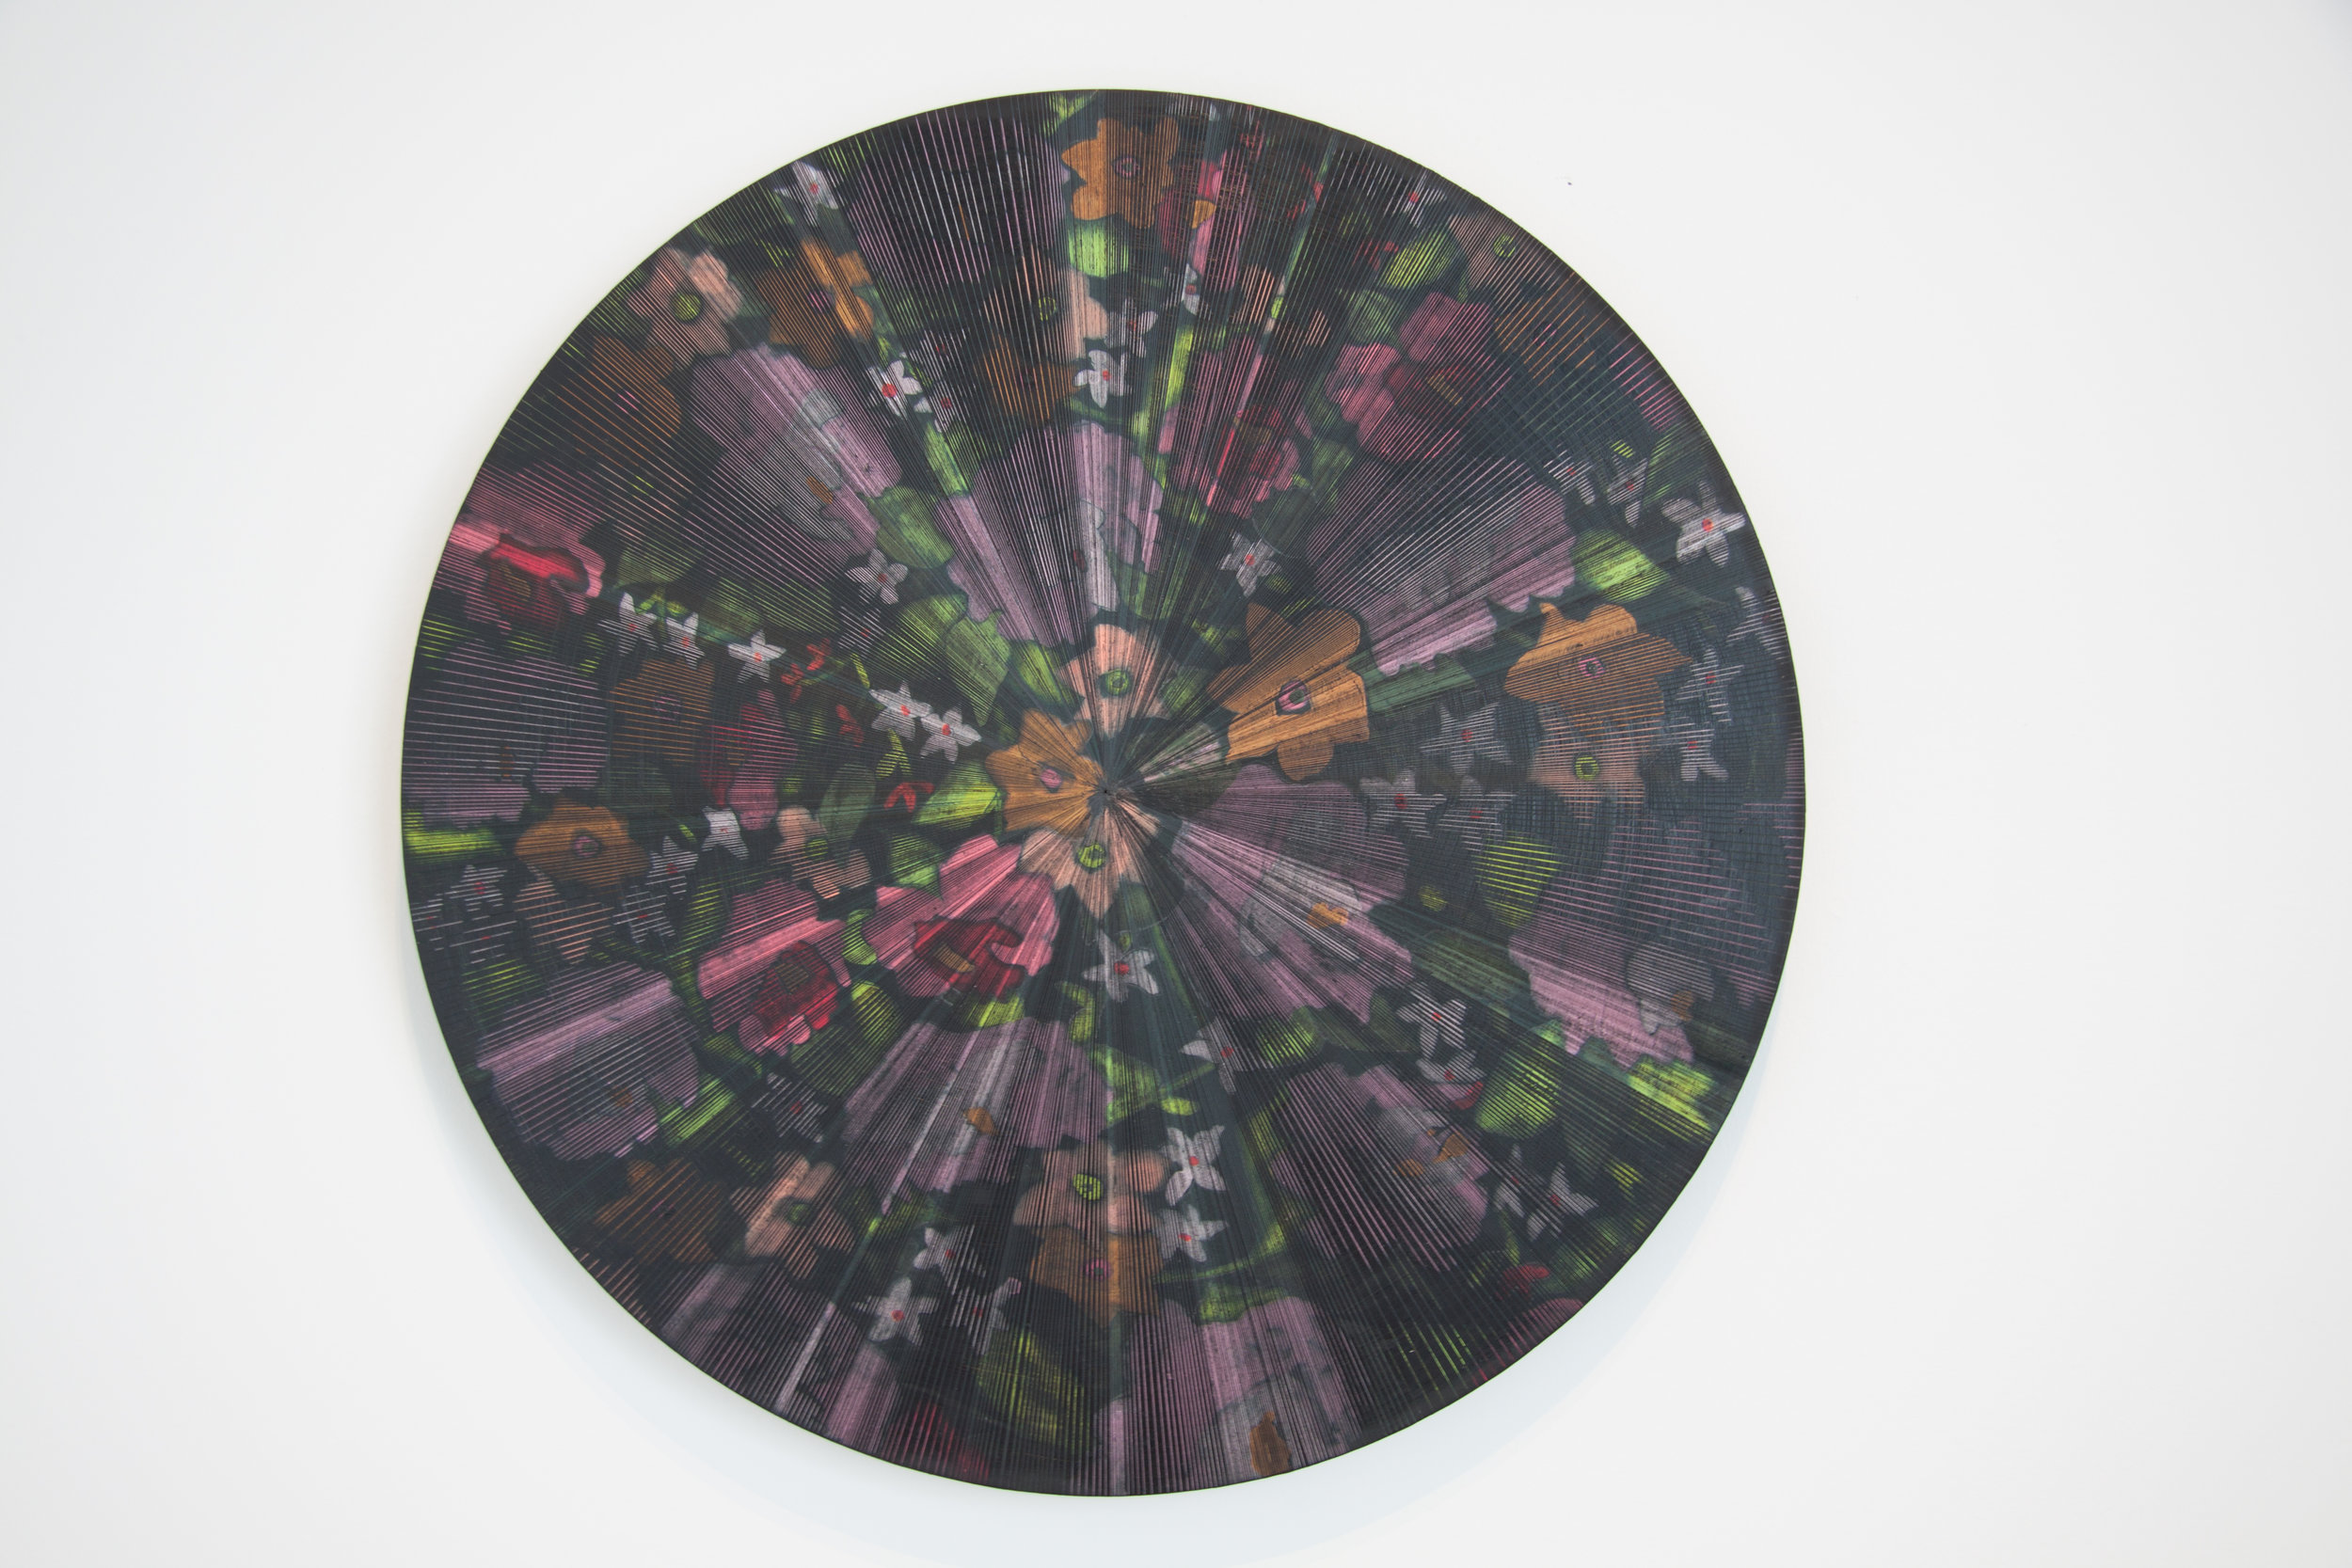 "Kelly S. Williams, Bougainvillea, 2017, Acrylic and oil on wood, 18"" diameter"